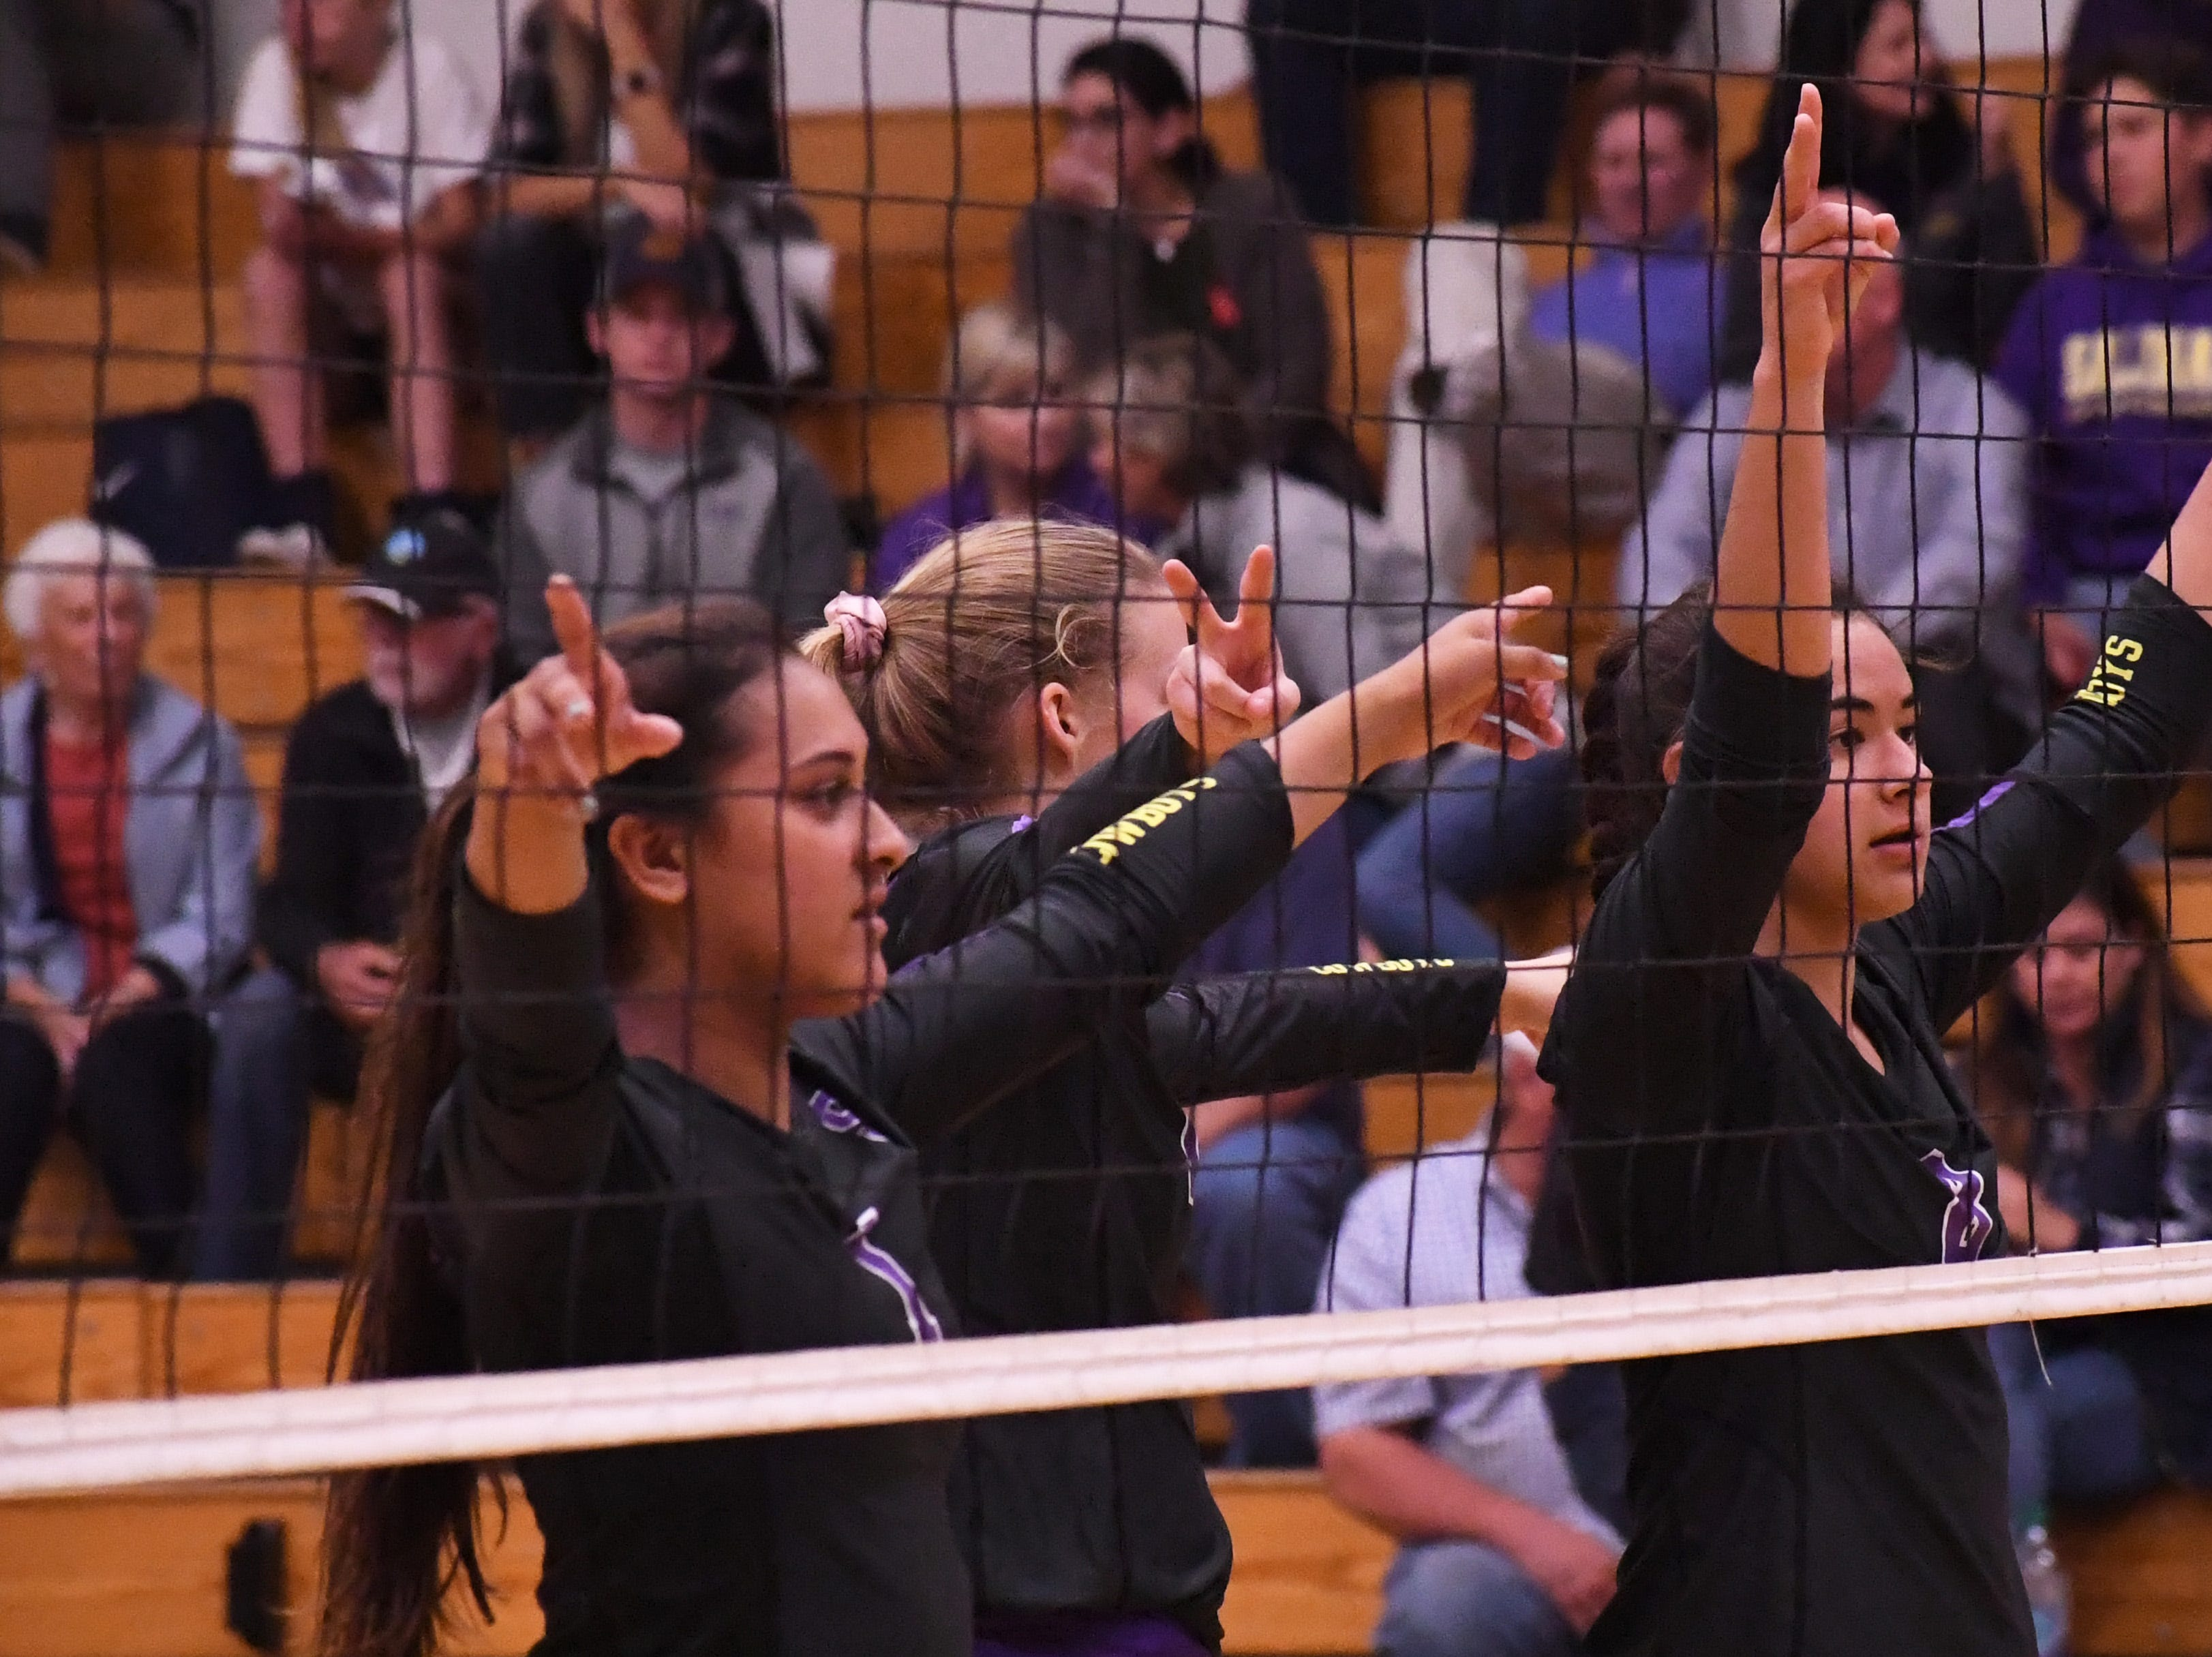 Setter Aloha Delk (1), outside hitter Ashleigh Souza (10) and middle blocker Christina Chagnon (8) wait for a serve from Kaila Uota.